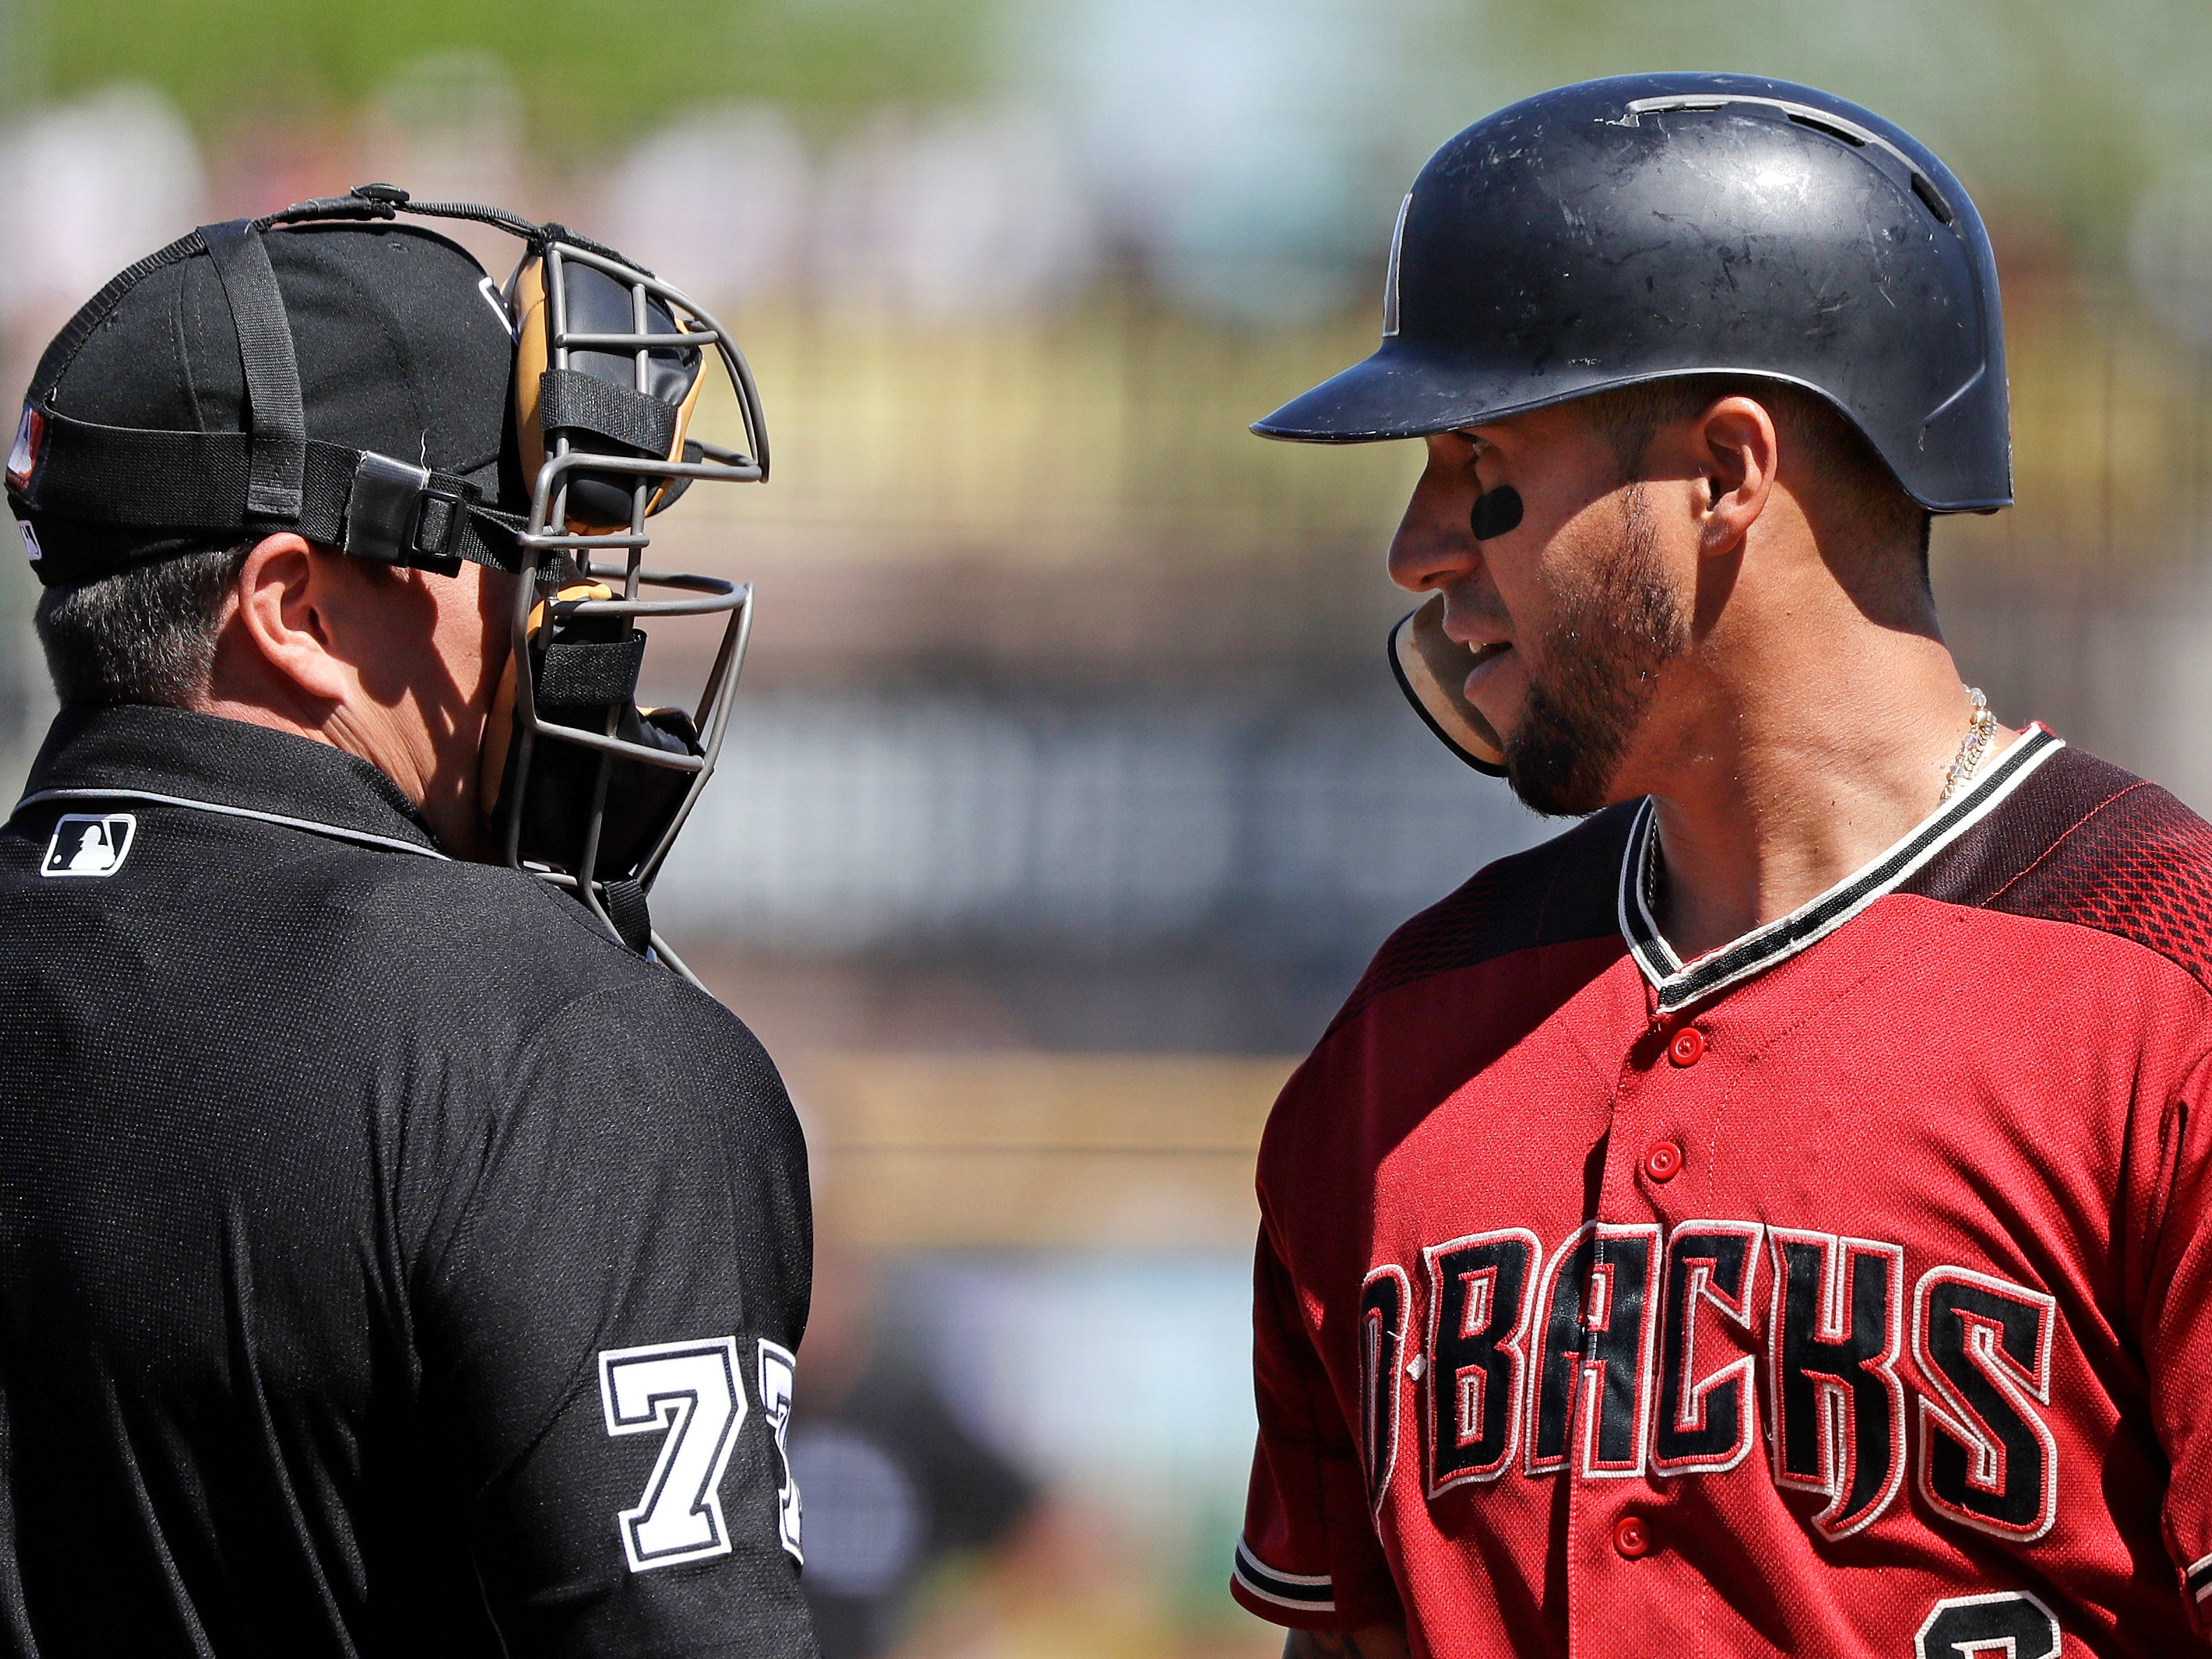 Arizona Diamondbacks' David Peralta, right, turns to talk with umpire Sean Ryan after being called out on strikes looking in the first inning of a spring training baseball game against the San Francisco Giants, Saturday, March 23, 2019, in Scottsdale, Ariz.